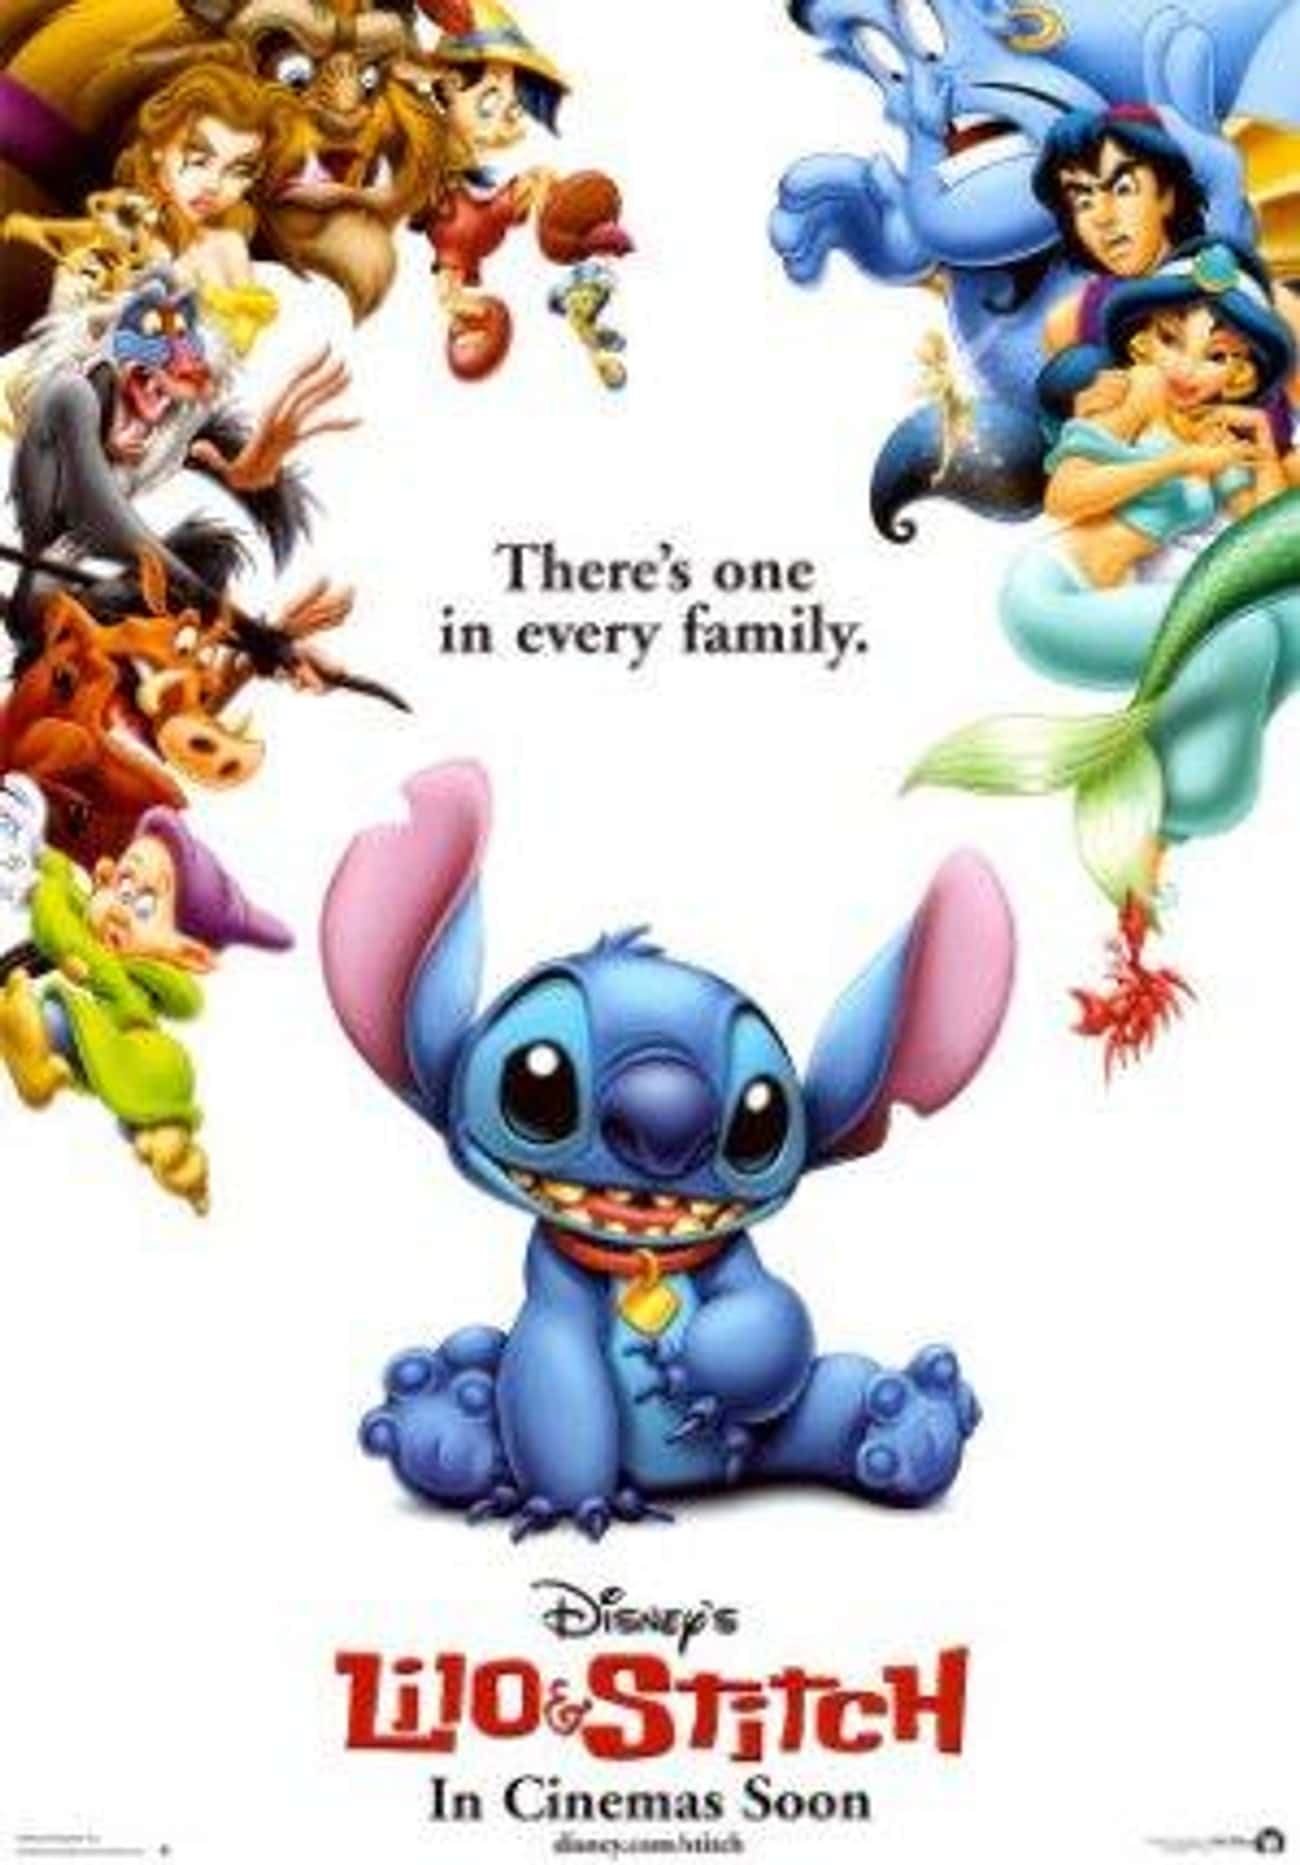 Lilo & Stitch is listed (or ranked) 4 on the list The Best Animated Movie Posters